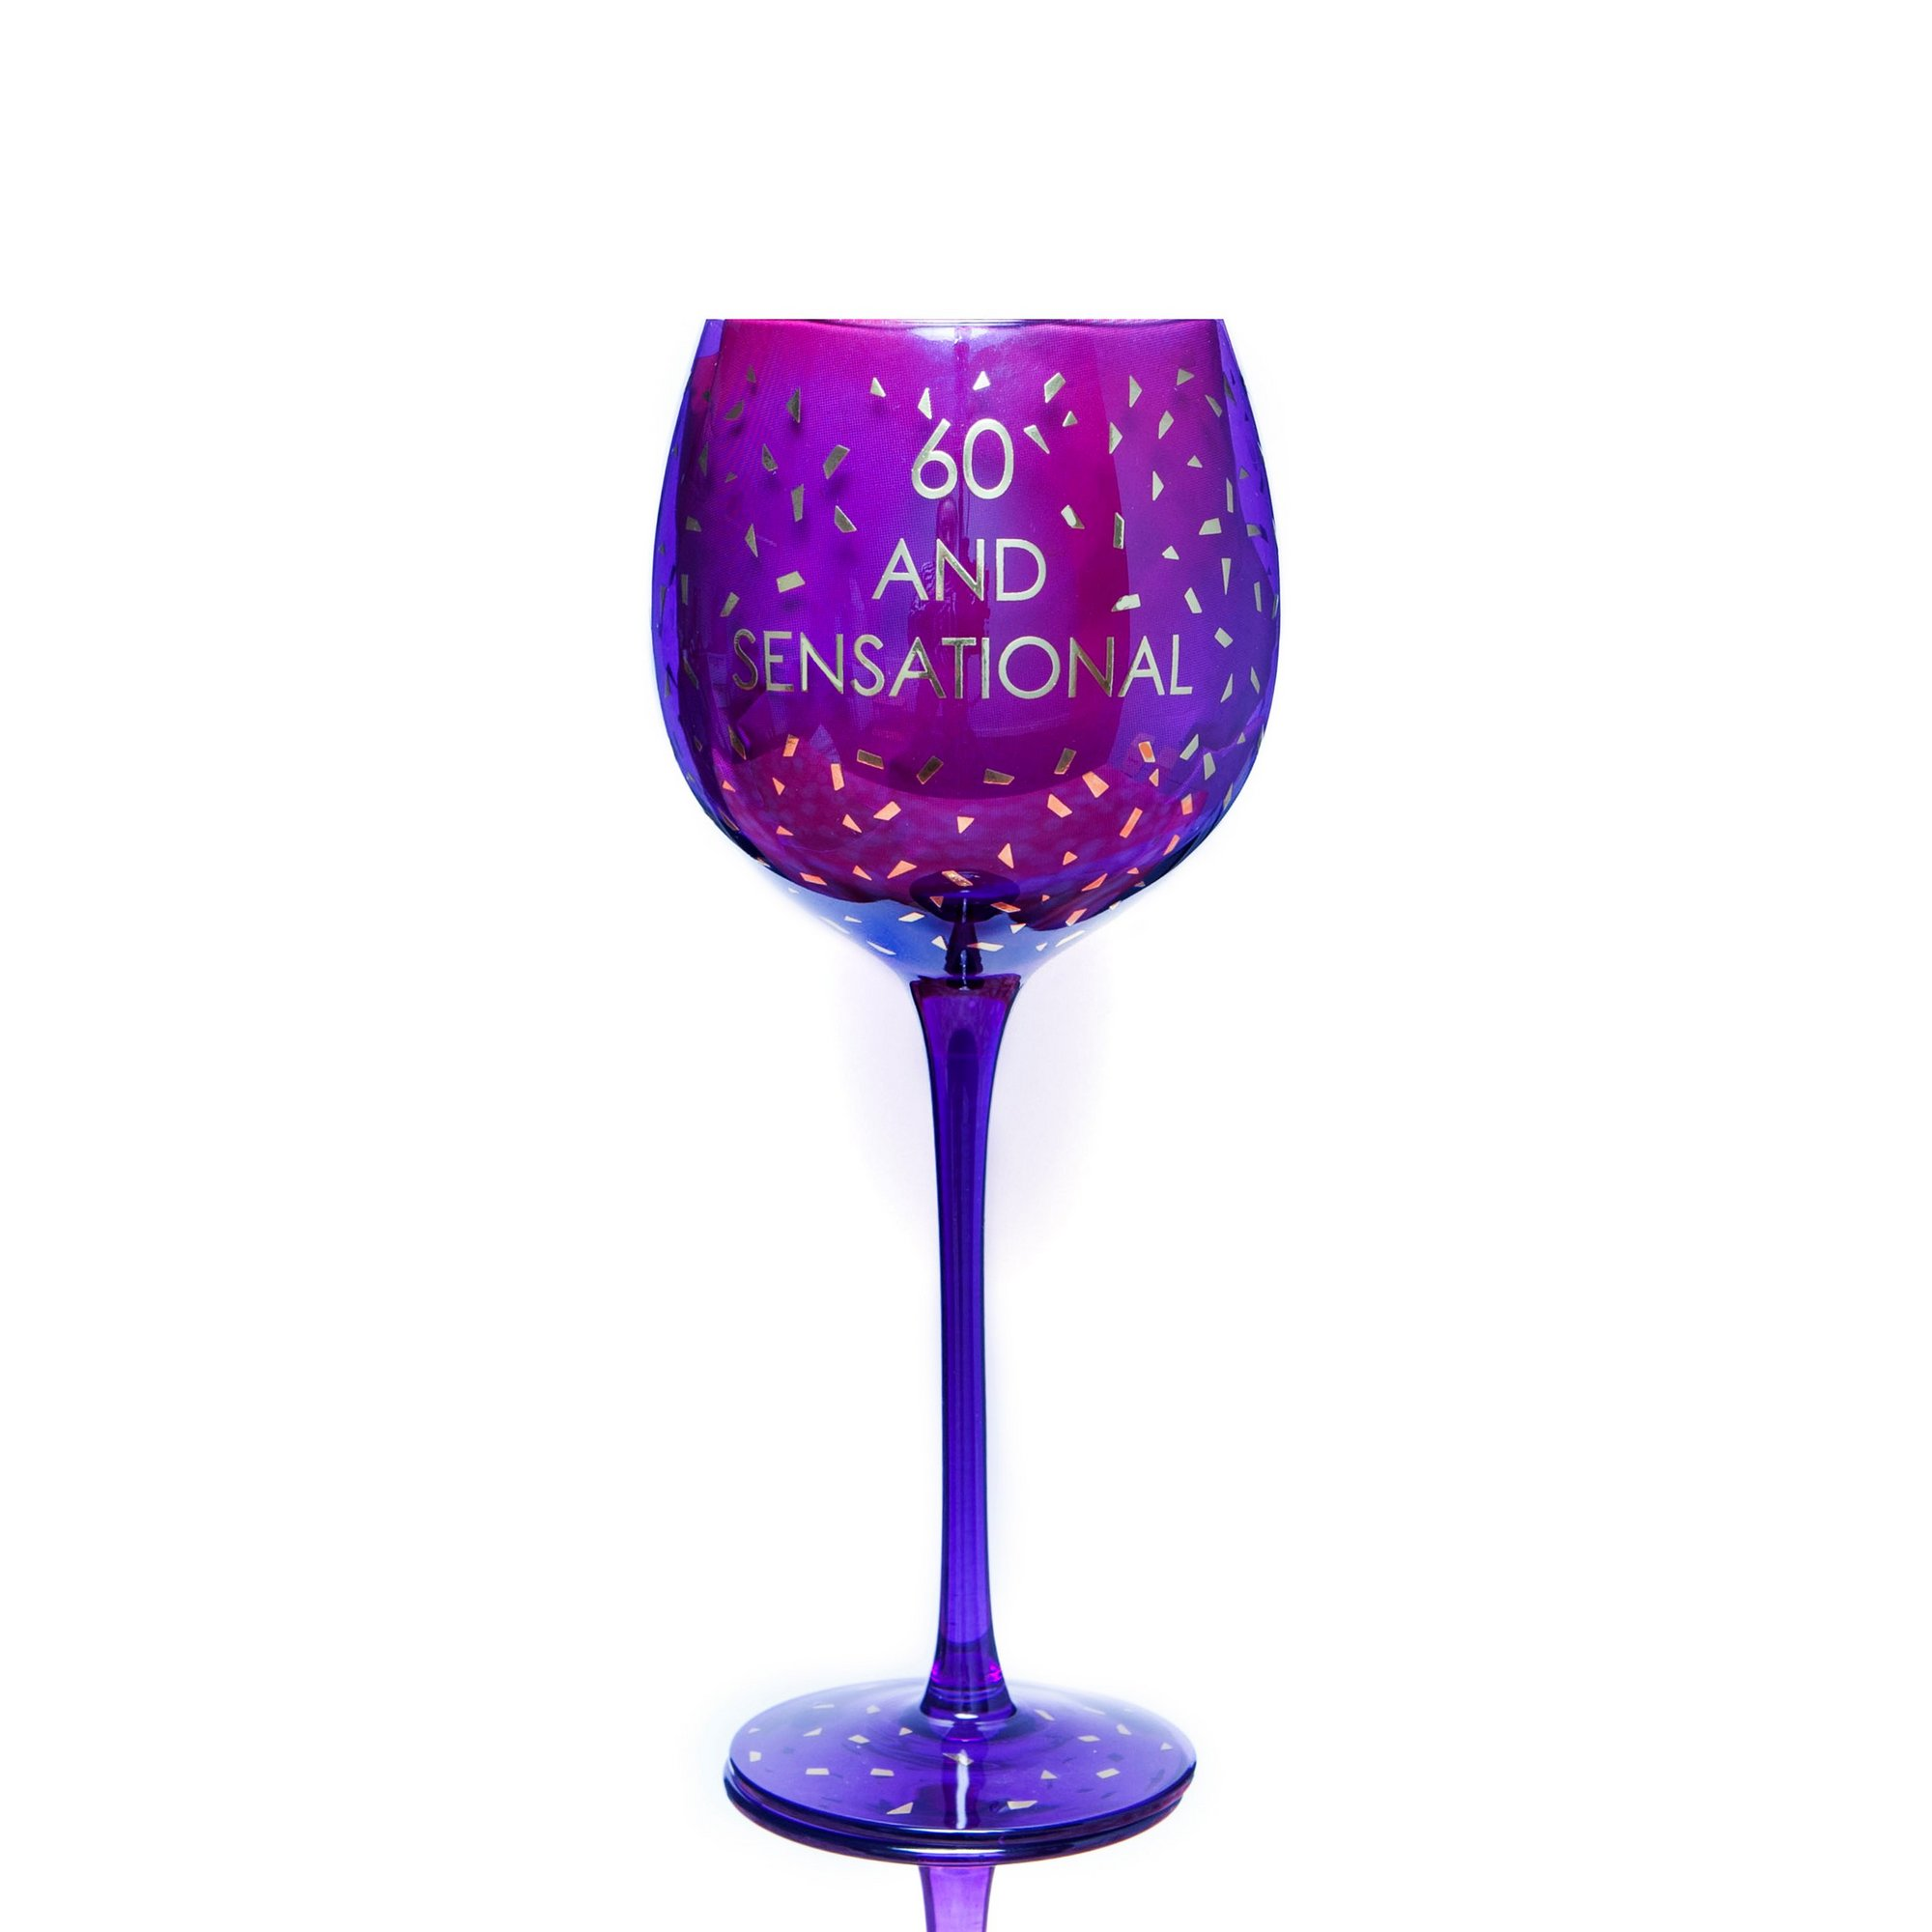 Image of 60th Opulent Wine Glass